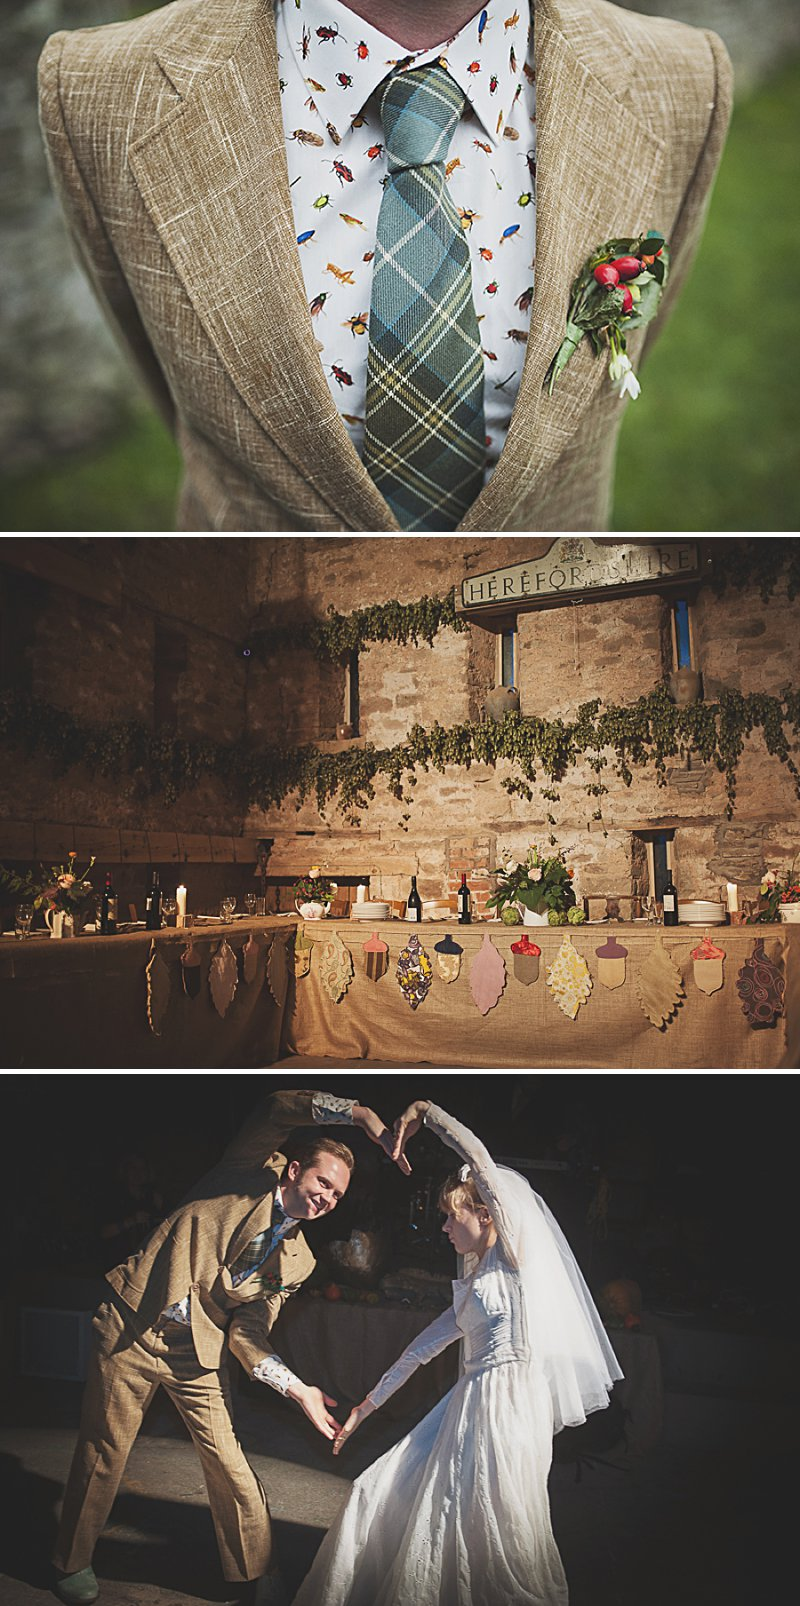 A DIY Wedding with homemade flowers, flamingo art, a polytunnel ceremony, apples, pumpkins, vintage dress and suit and vegetable bouquets.  Apple sharing ceremony at home with photography by Camilla Rosa_0012